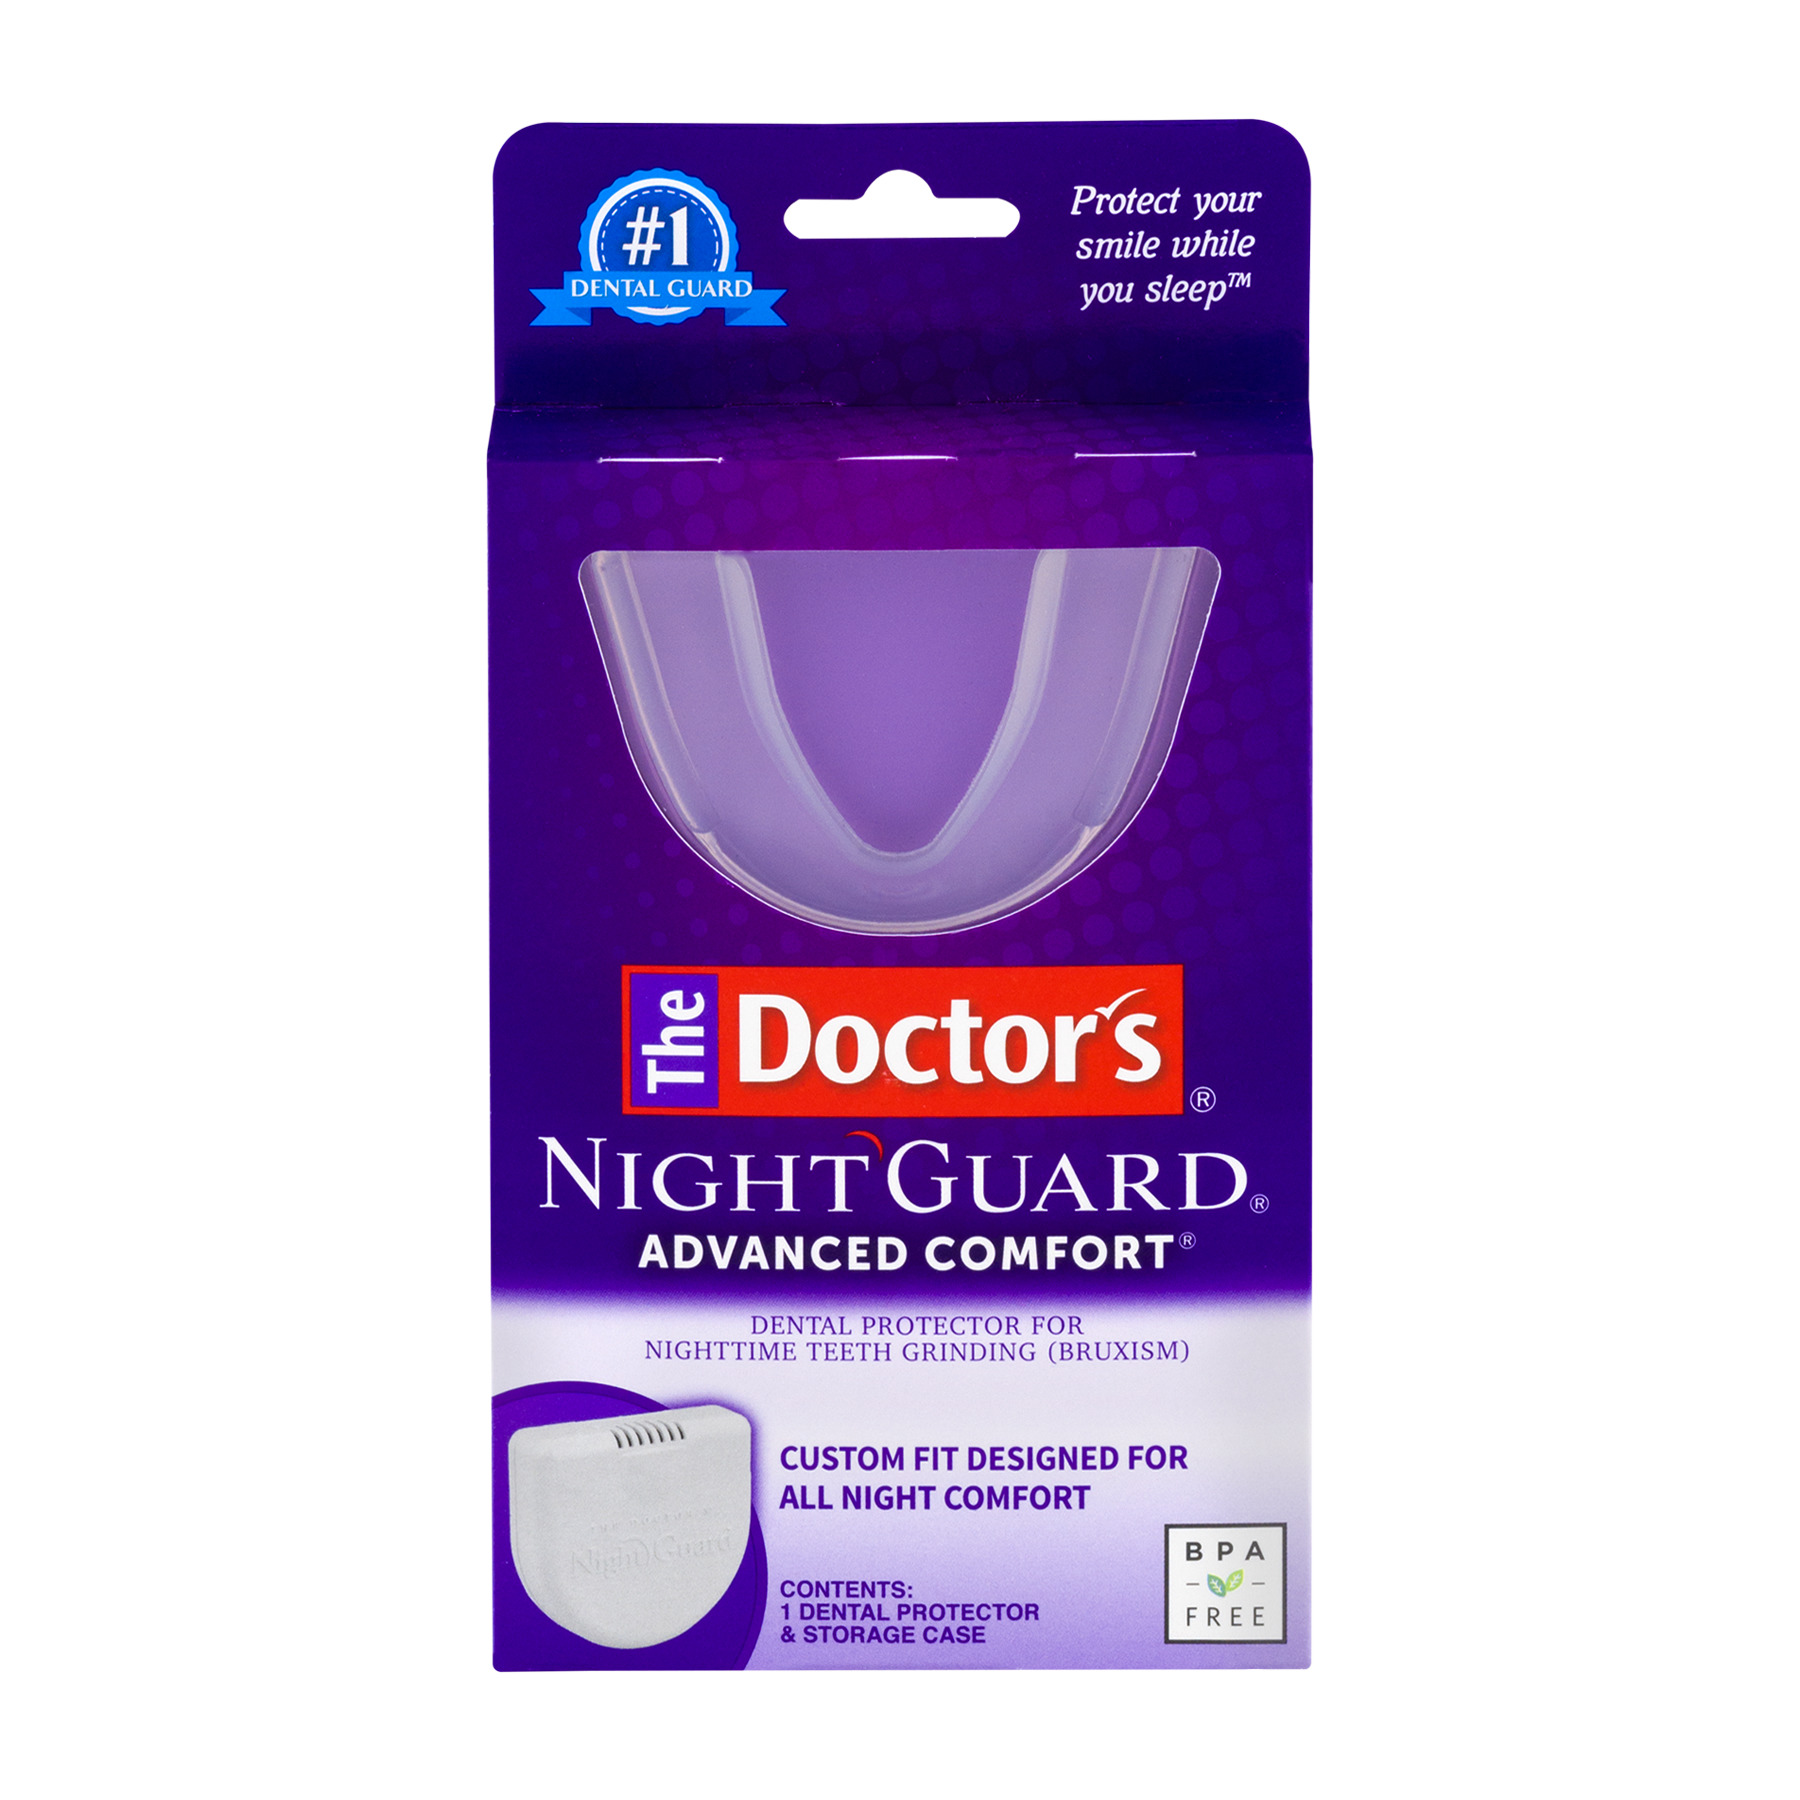 The Doctor's Night Guard Advanced Comfort Dental Protector, 1.0 CT